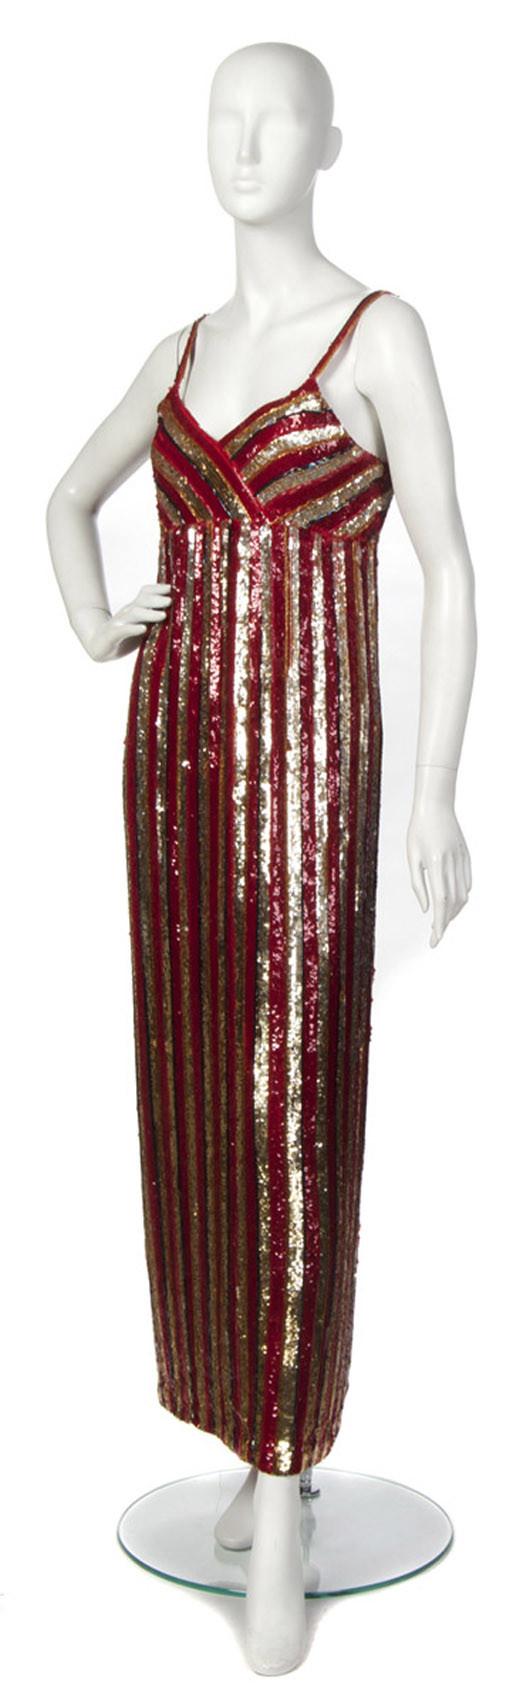 Saks Fifth Avenue gold and red sequin and beaded evening gown. Labeled: Saks Fifth Avenue. Property from the Collection of Gladys Knight, Las Vegas, Nevada. Estimate $600-$800. Image courtesy Leslie Hindman Auctioneers.